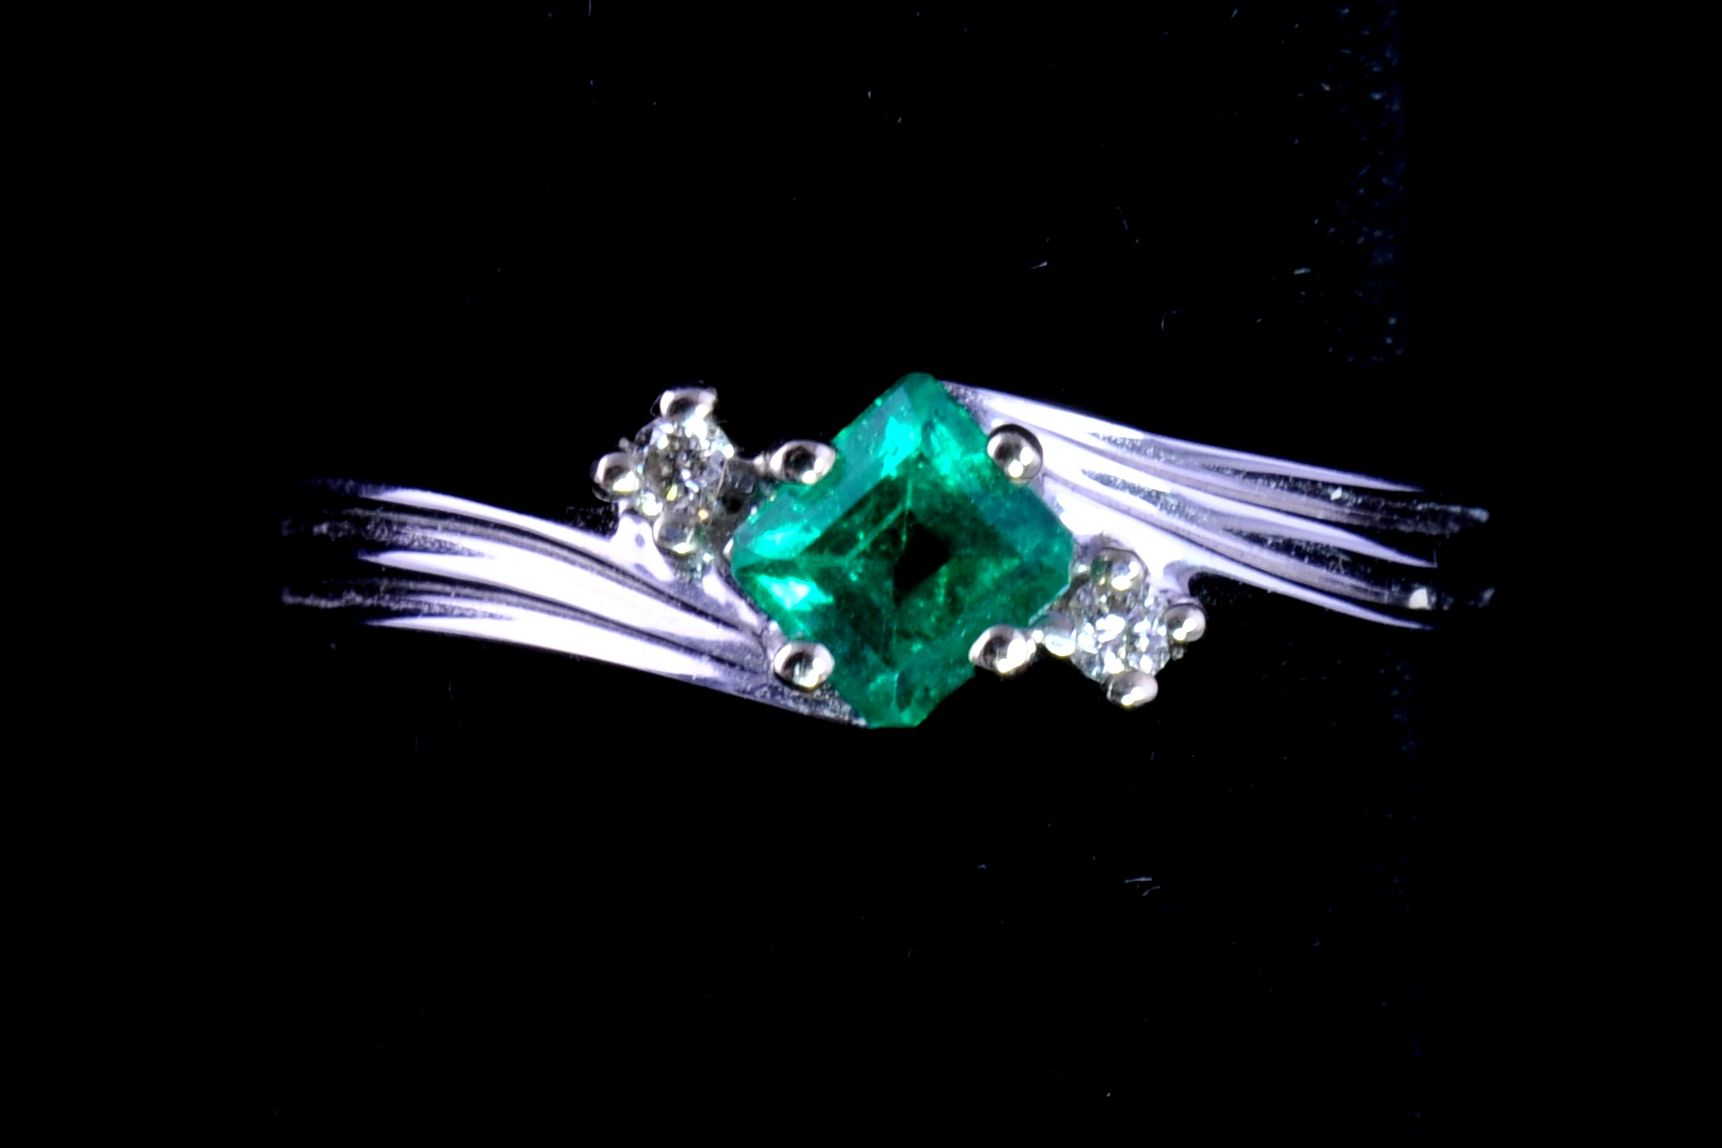 .39 ct. Fine Emerald, Clear and vibrant green color, .04 TW Diamonds, 14K White Gold  By James Rath